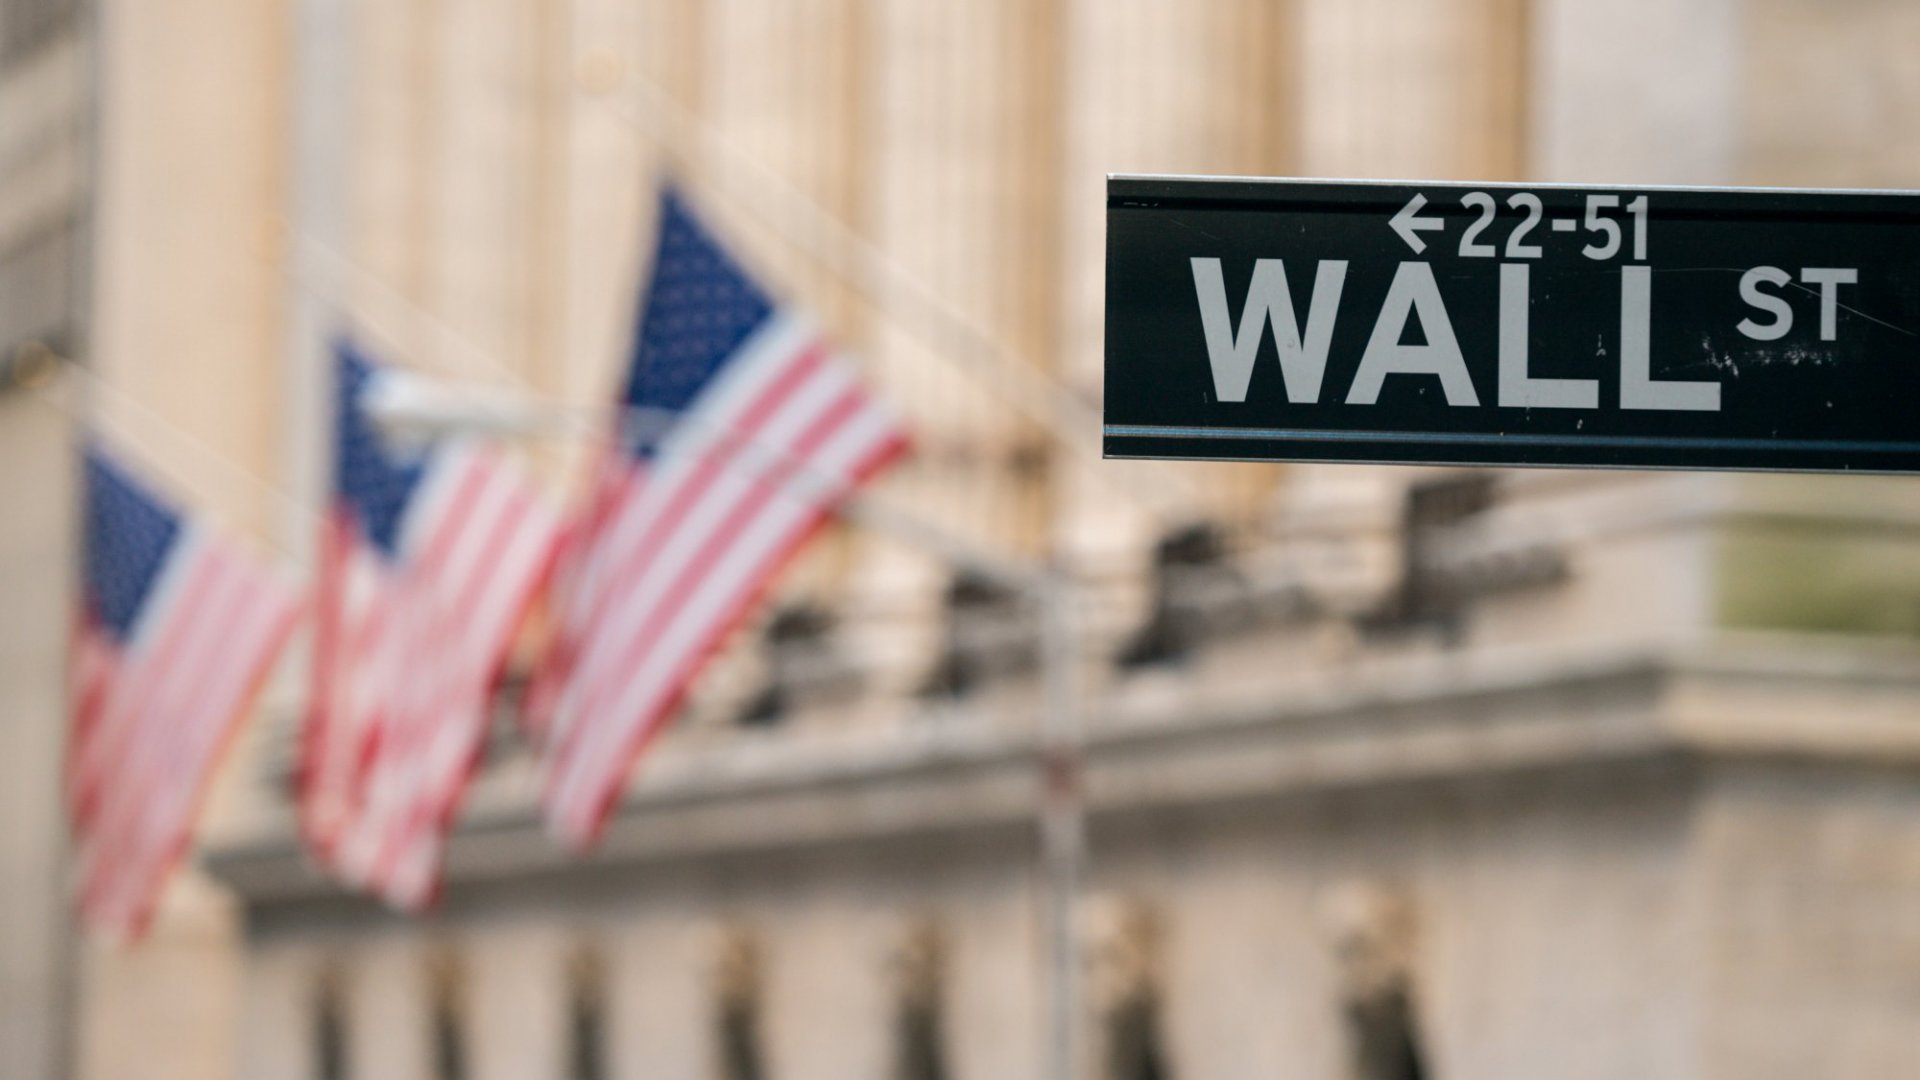 5 Huge Tech IPOs to Watch in 2019